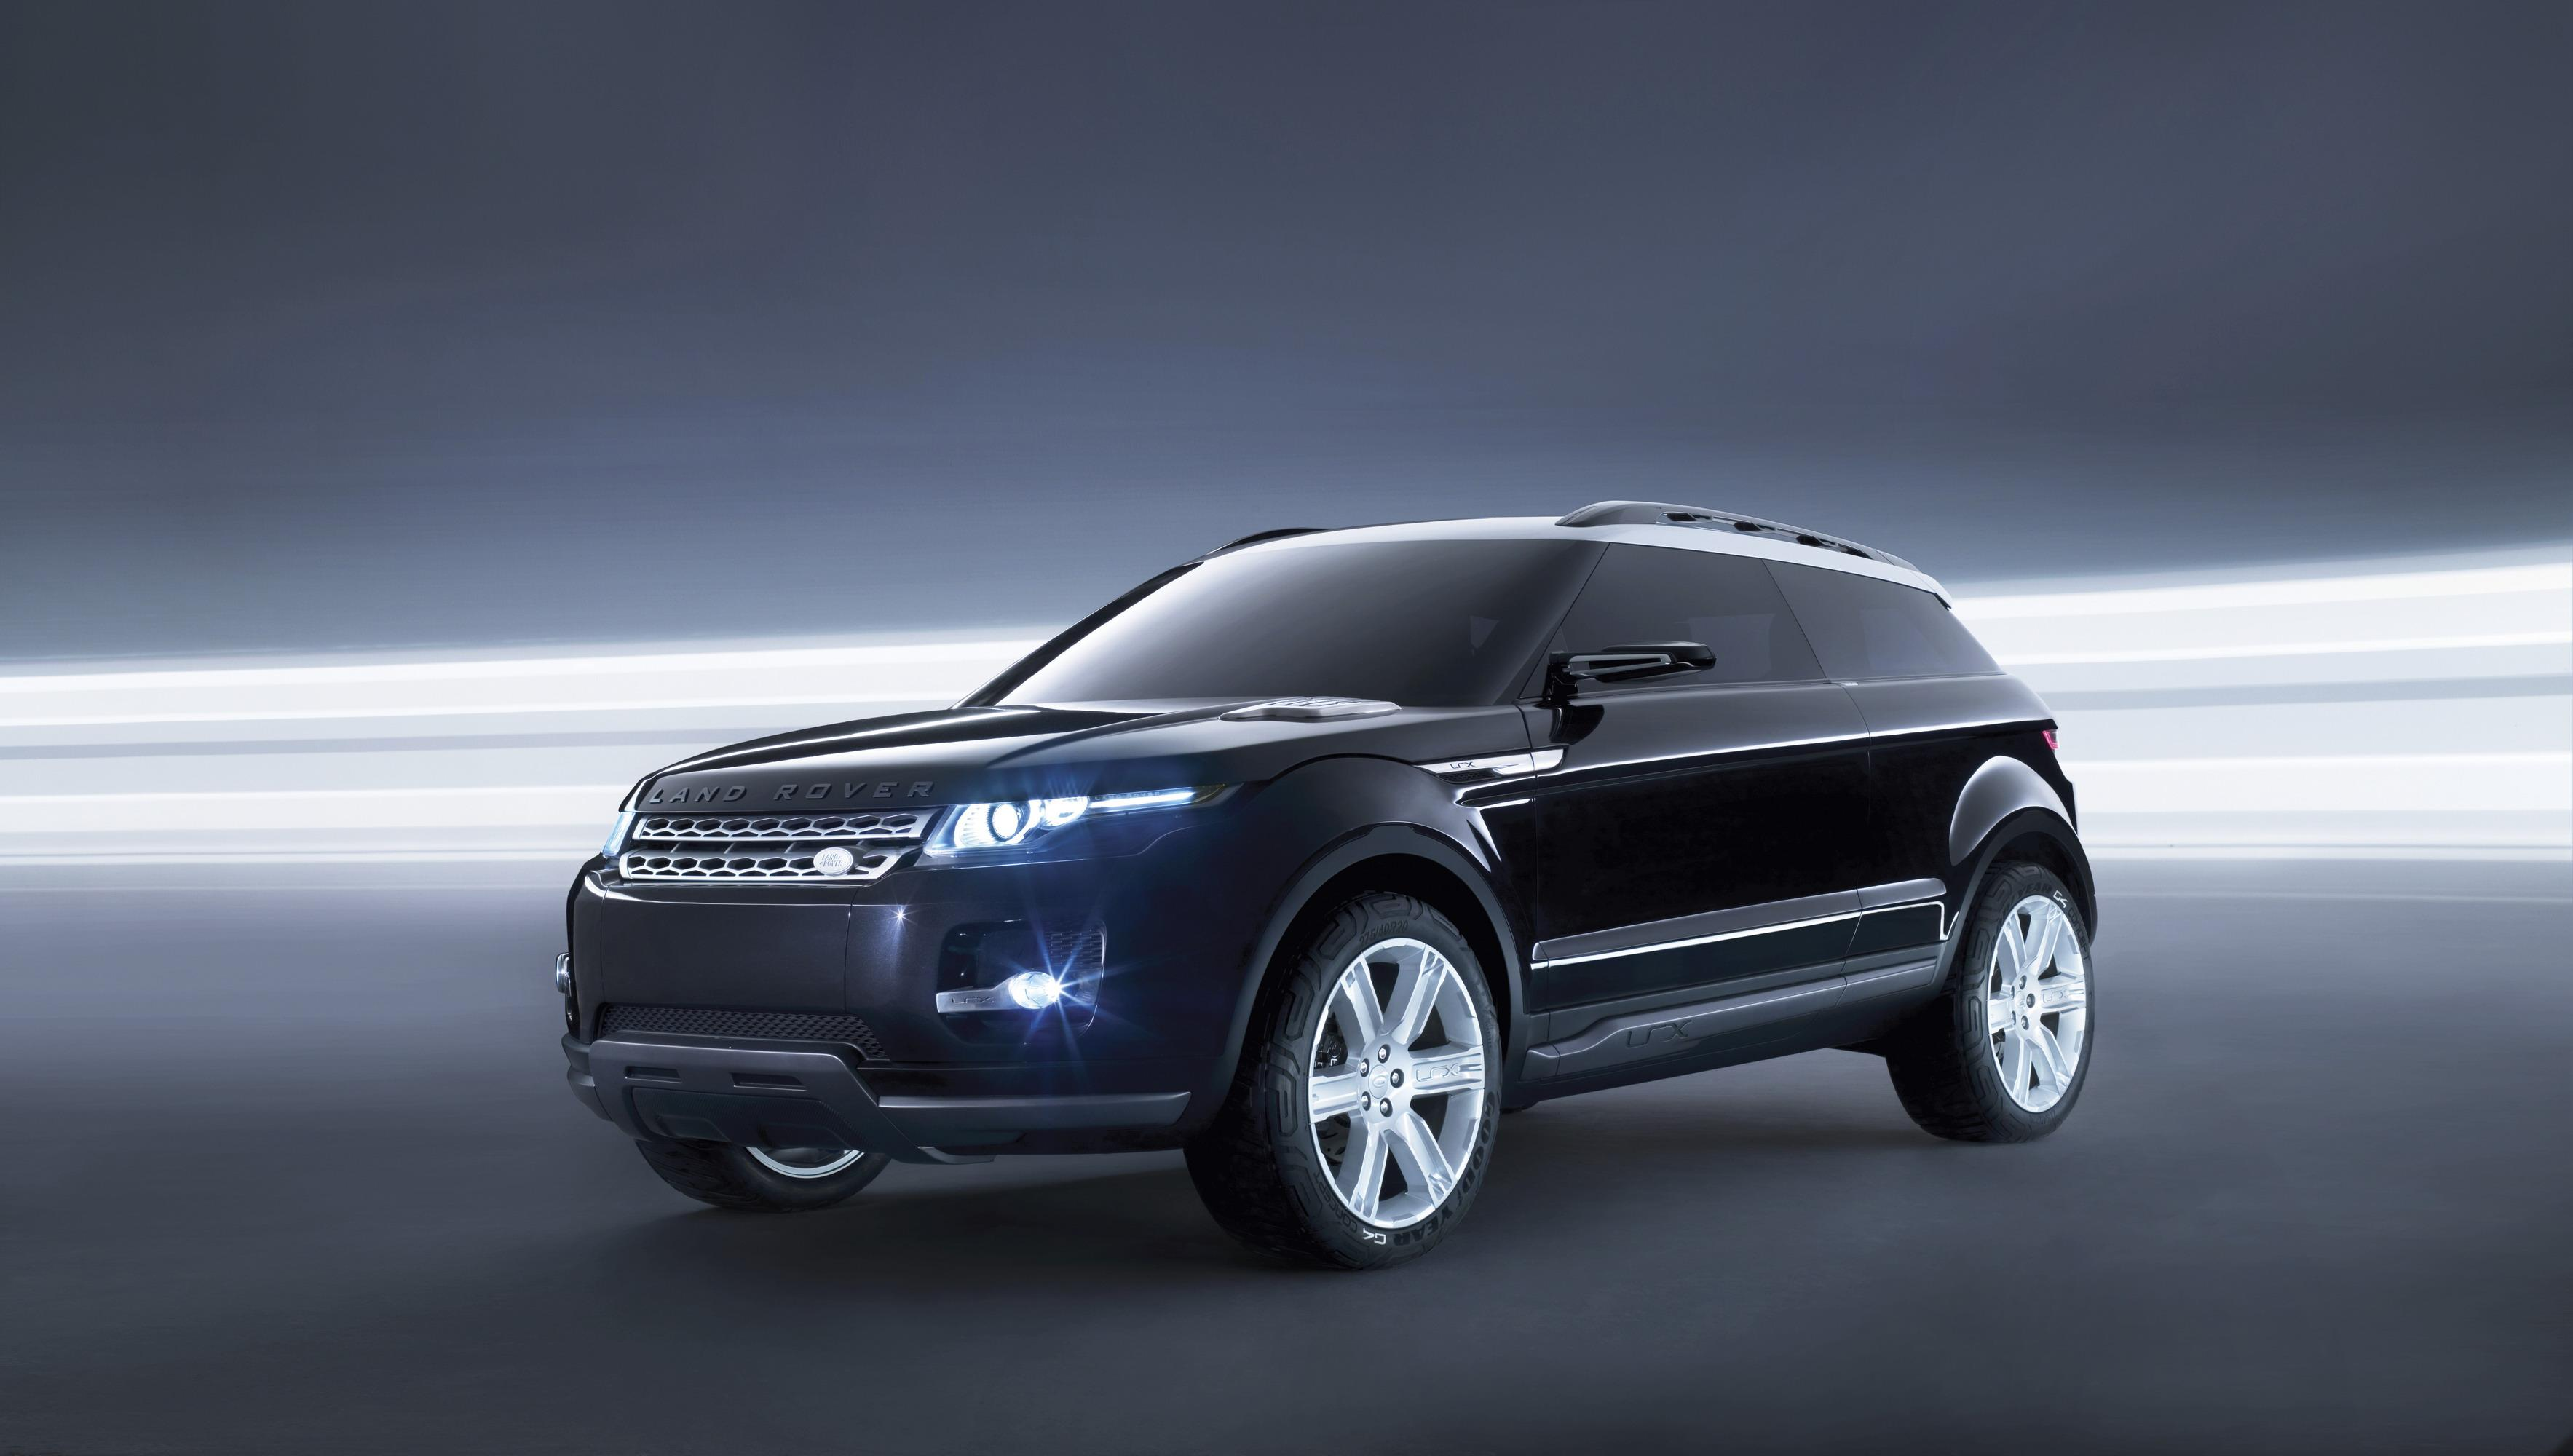 https://pictures.topspeed.com/IMG/jpg/200803/land-rover-lrx-conce-4.jpg